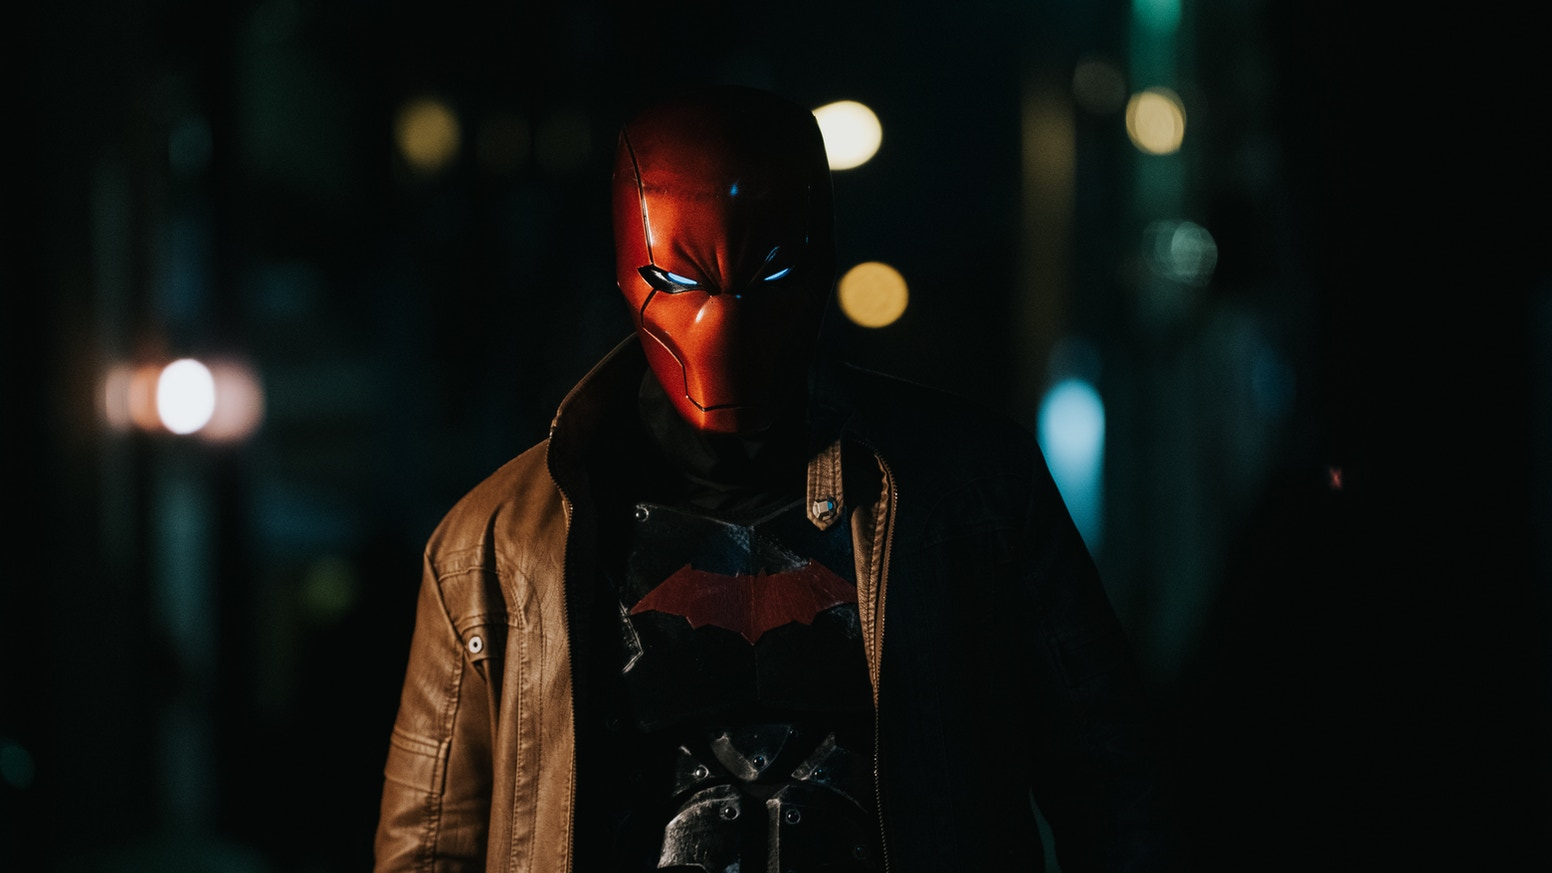 Red Hood: The FAN Series Season 2  follows the adventures of Red Hood, Red Robin, and Damian Wayne as they fight to save Gotham!